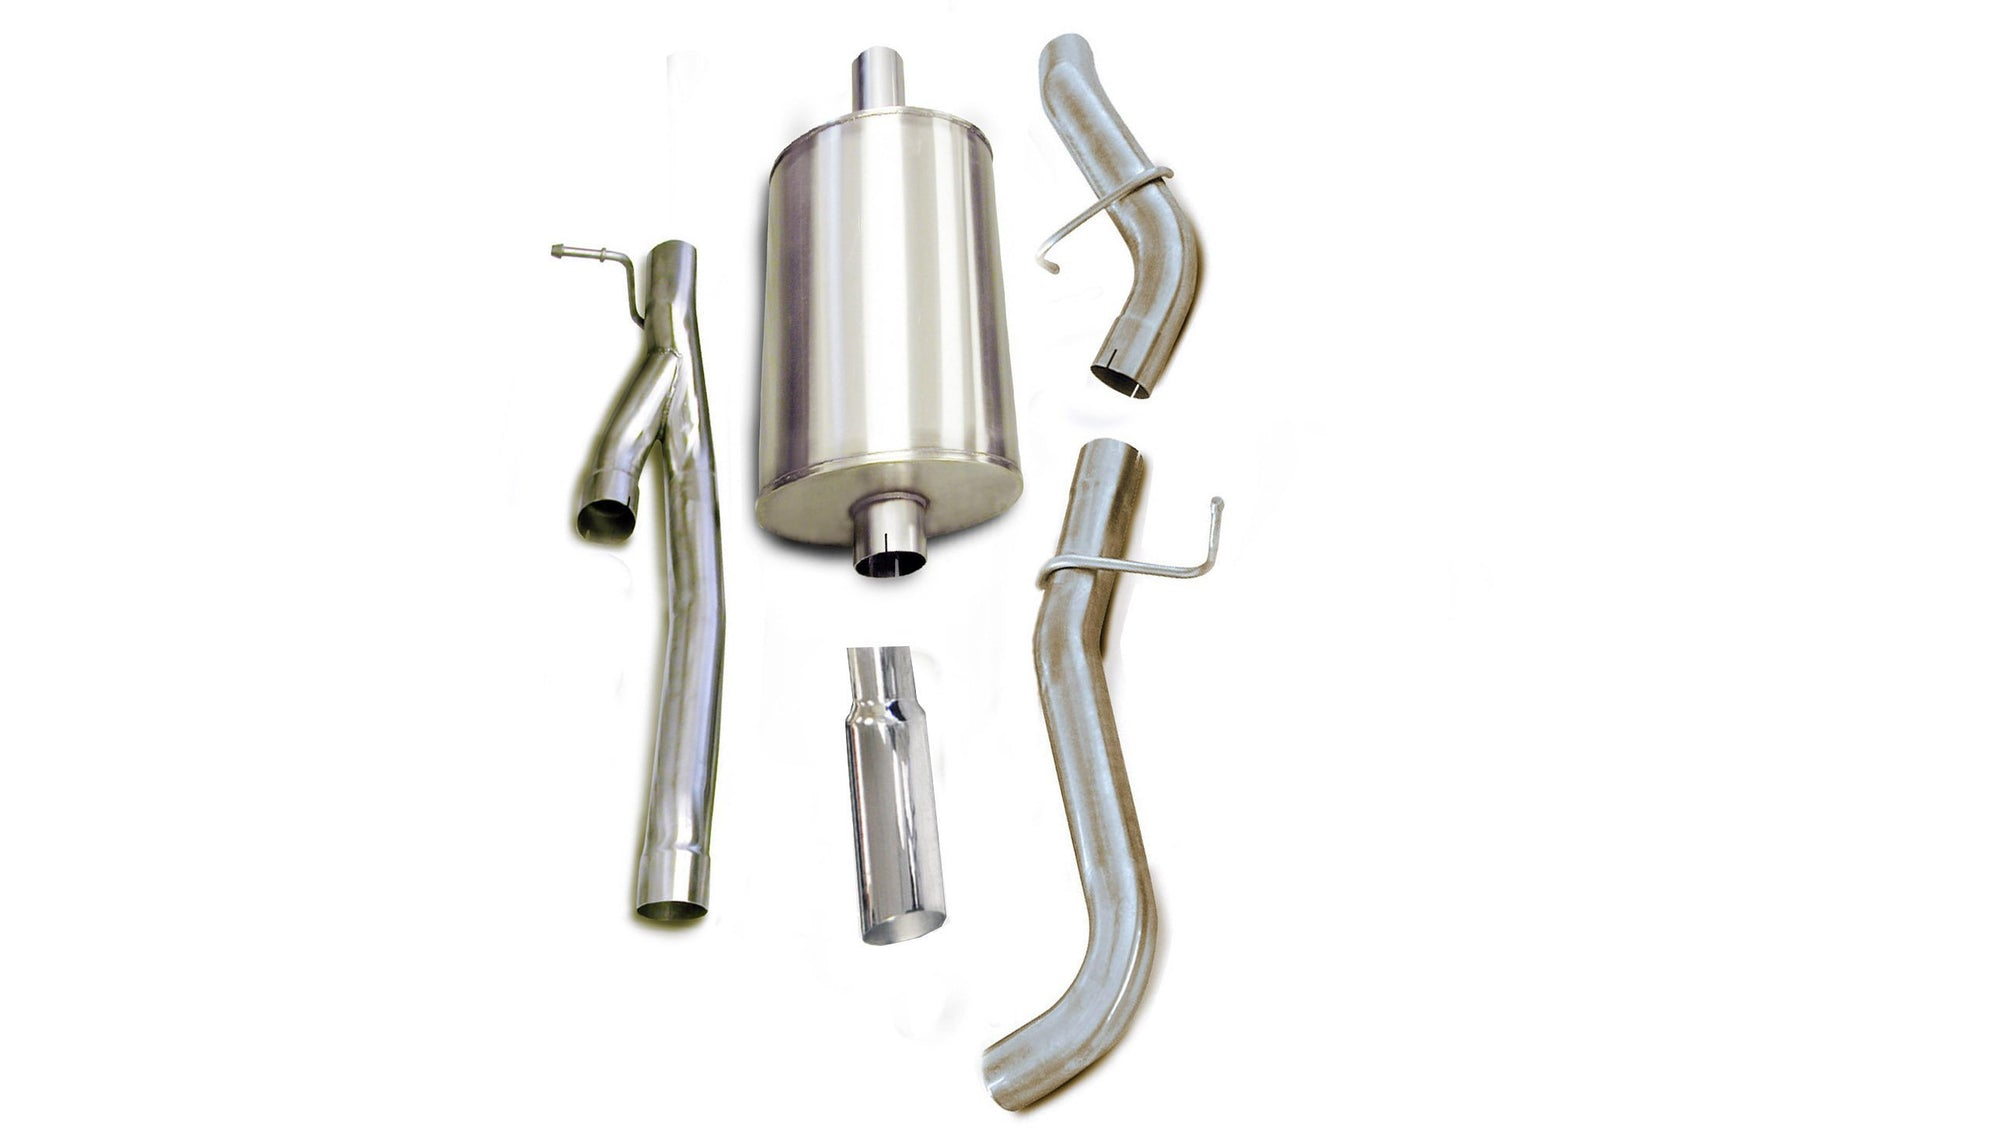 "dB Cat-Back Exhaust Polished / Sport / Single Side - Single 4in 2005-2006 Chevrolet Silverado, GMC Sierra, 6.0L, 6.2L V8, 3.0"" Single Side Exit Catback Exhaust System with 4.0"" Tip (24240) Sport Sound Level"